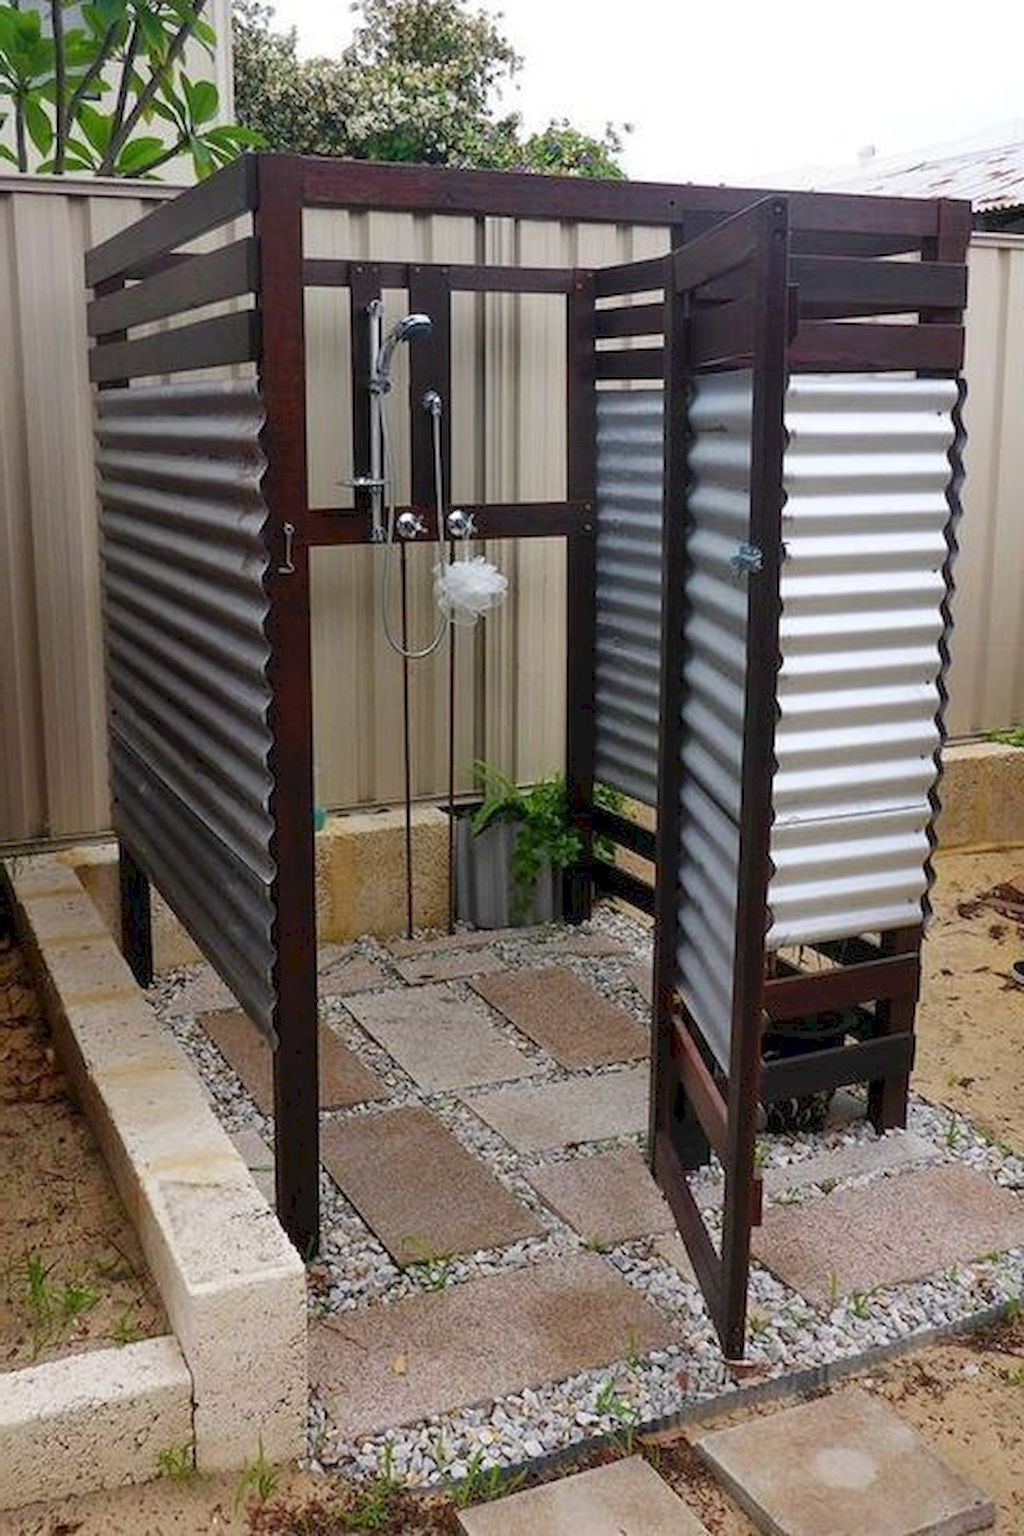 Amazing Outdoor Bathroom Shower Ideas You Can Try In Your Home Decor Around The World In 2020 Outdoor Bathrooms Pool Decor Outdoor Bathroom Design